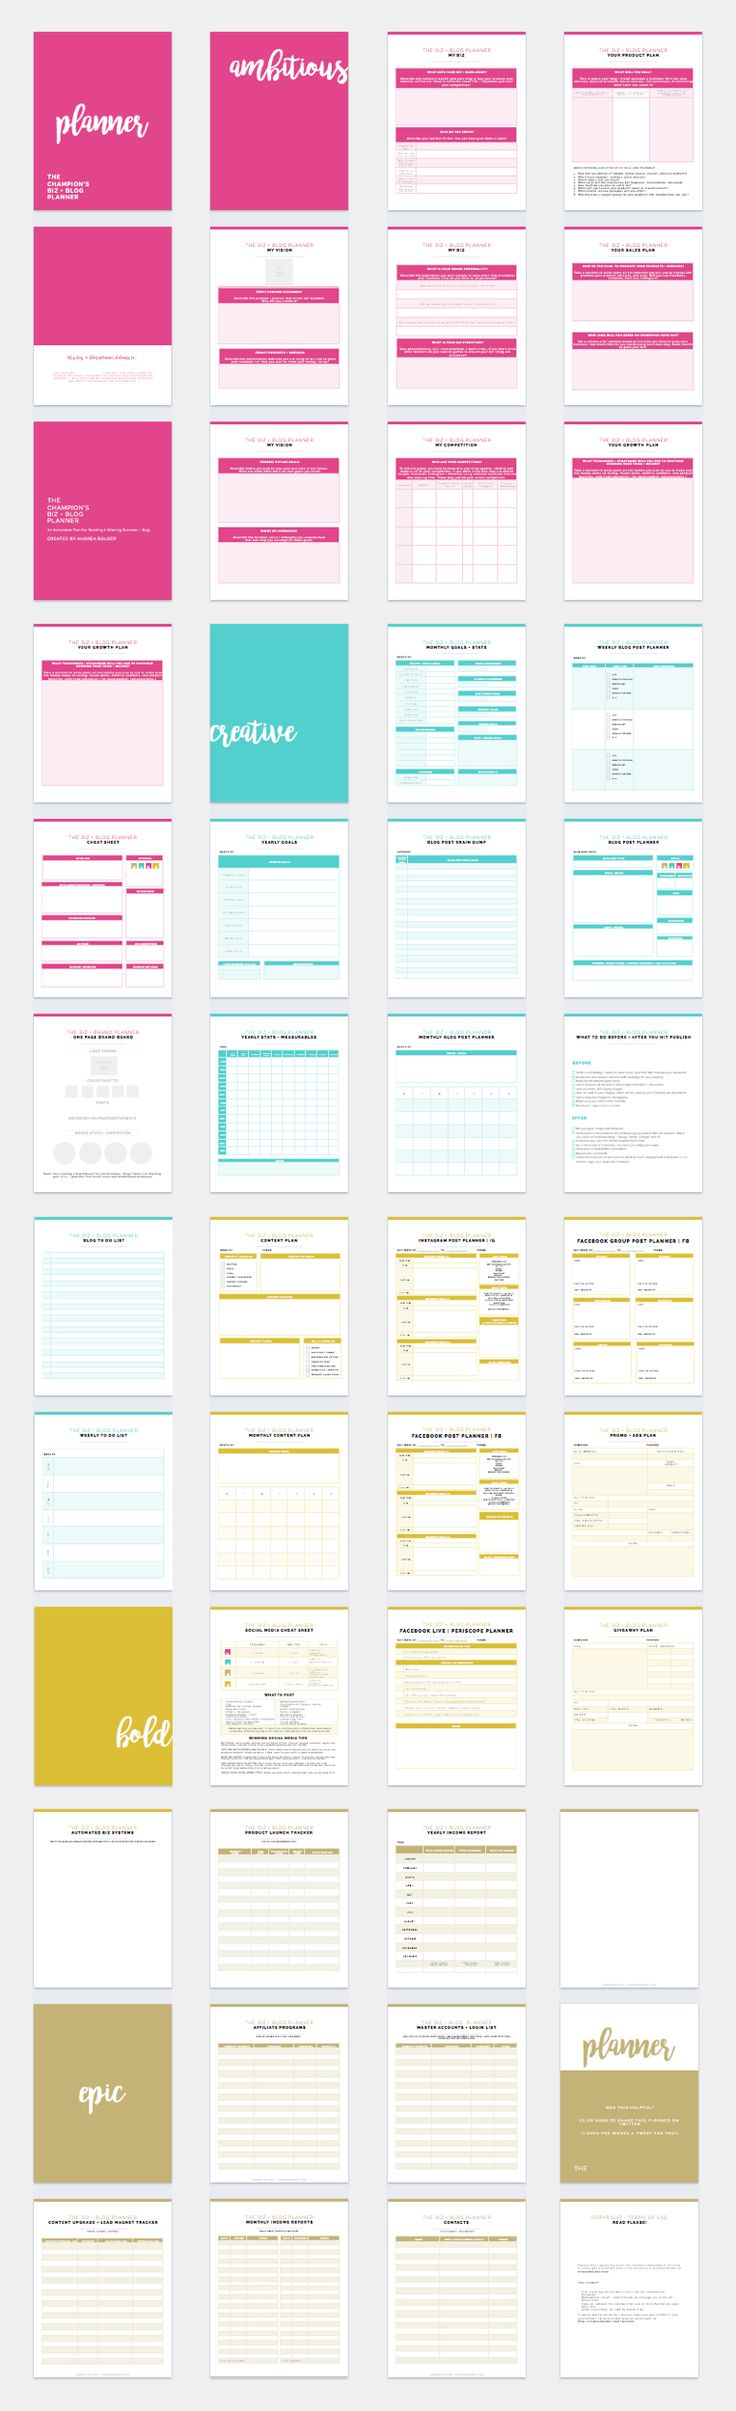 The Most EPIC Business Blog Planner Ever!